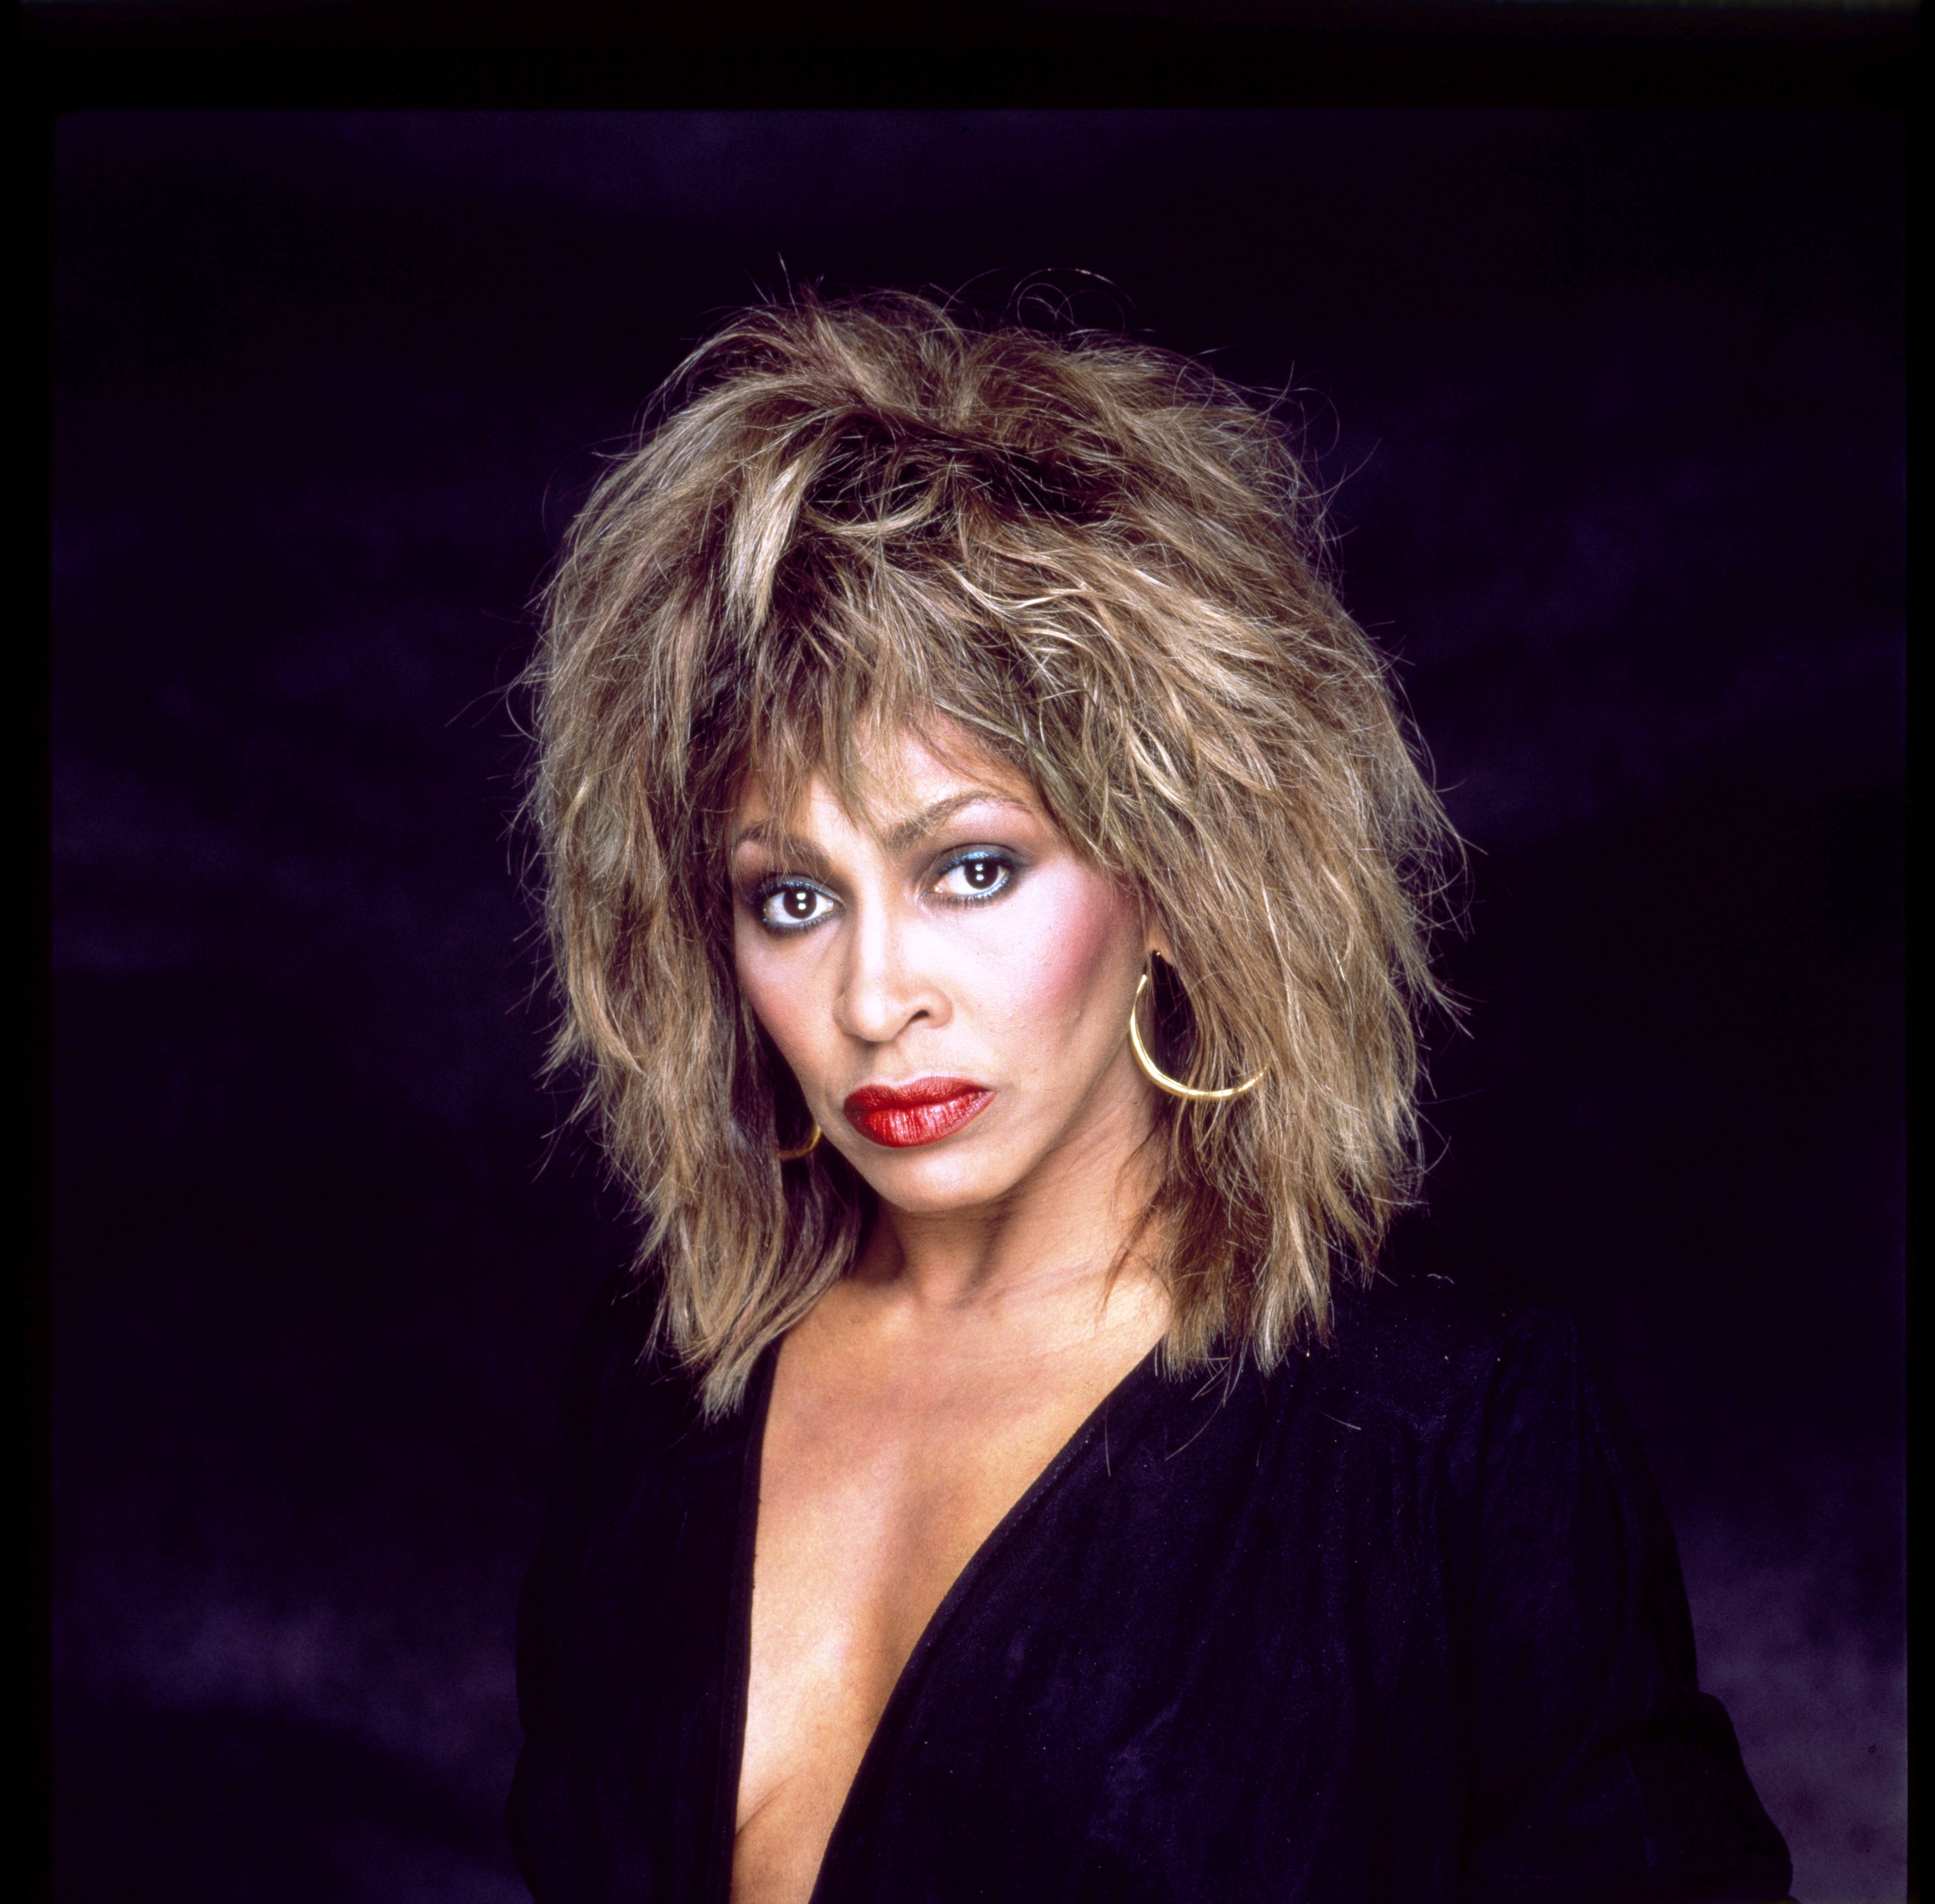 Tina Turner photo, pics, wallpaper - photo #